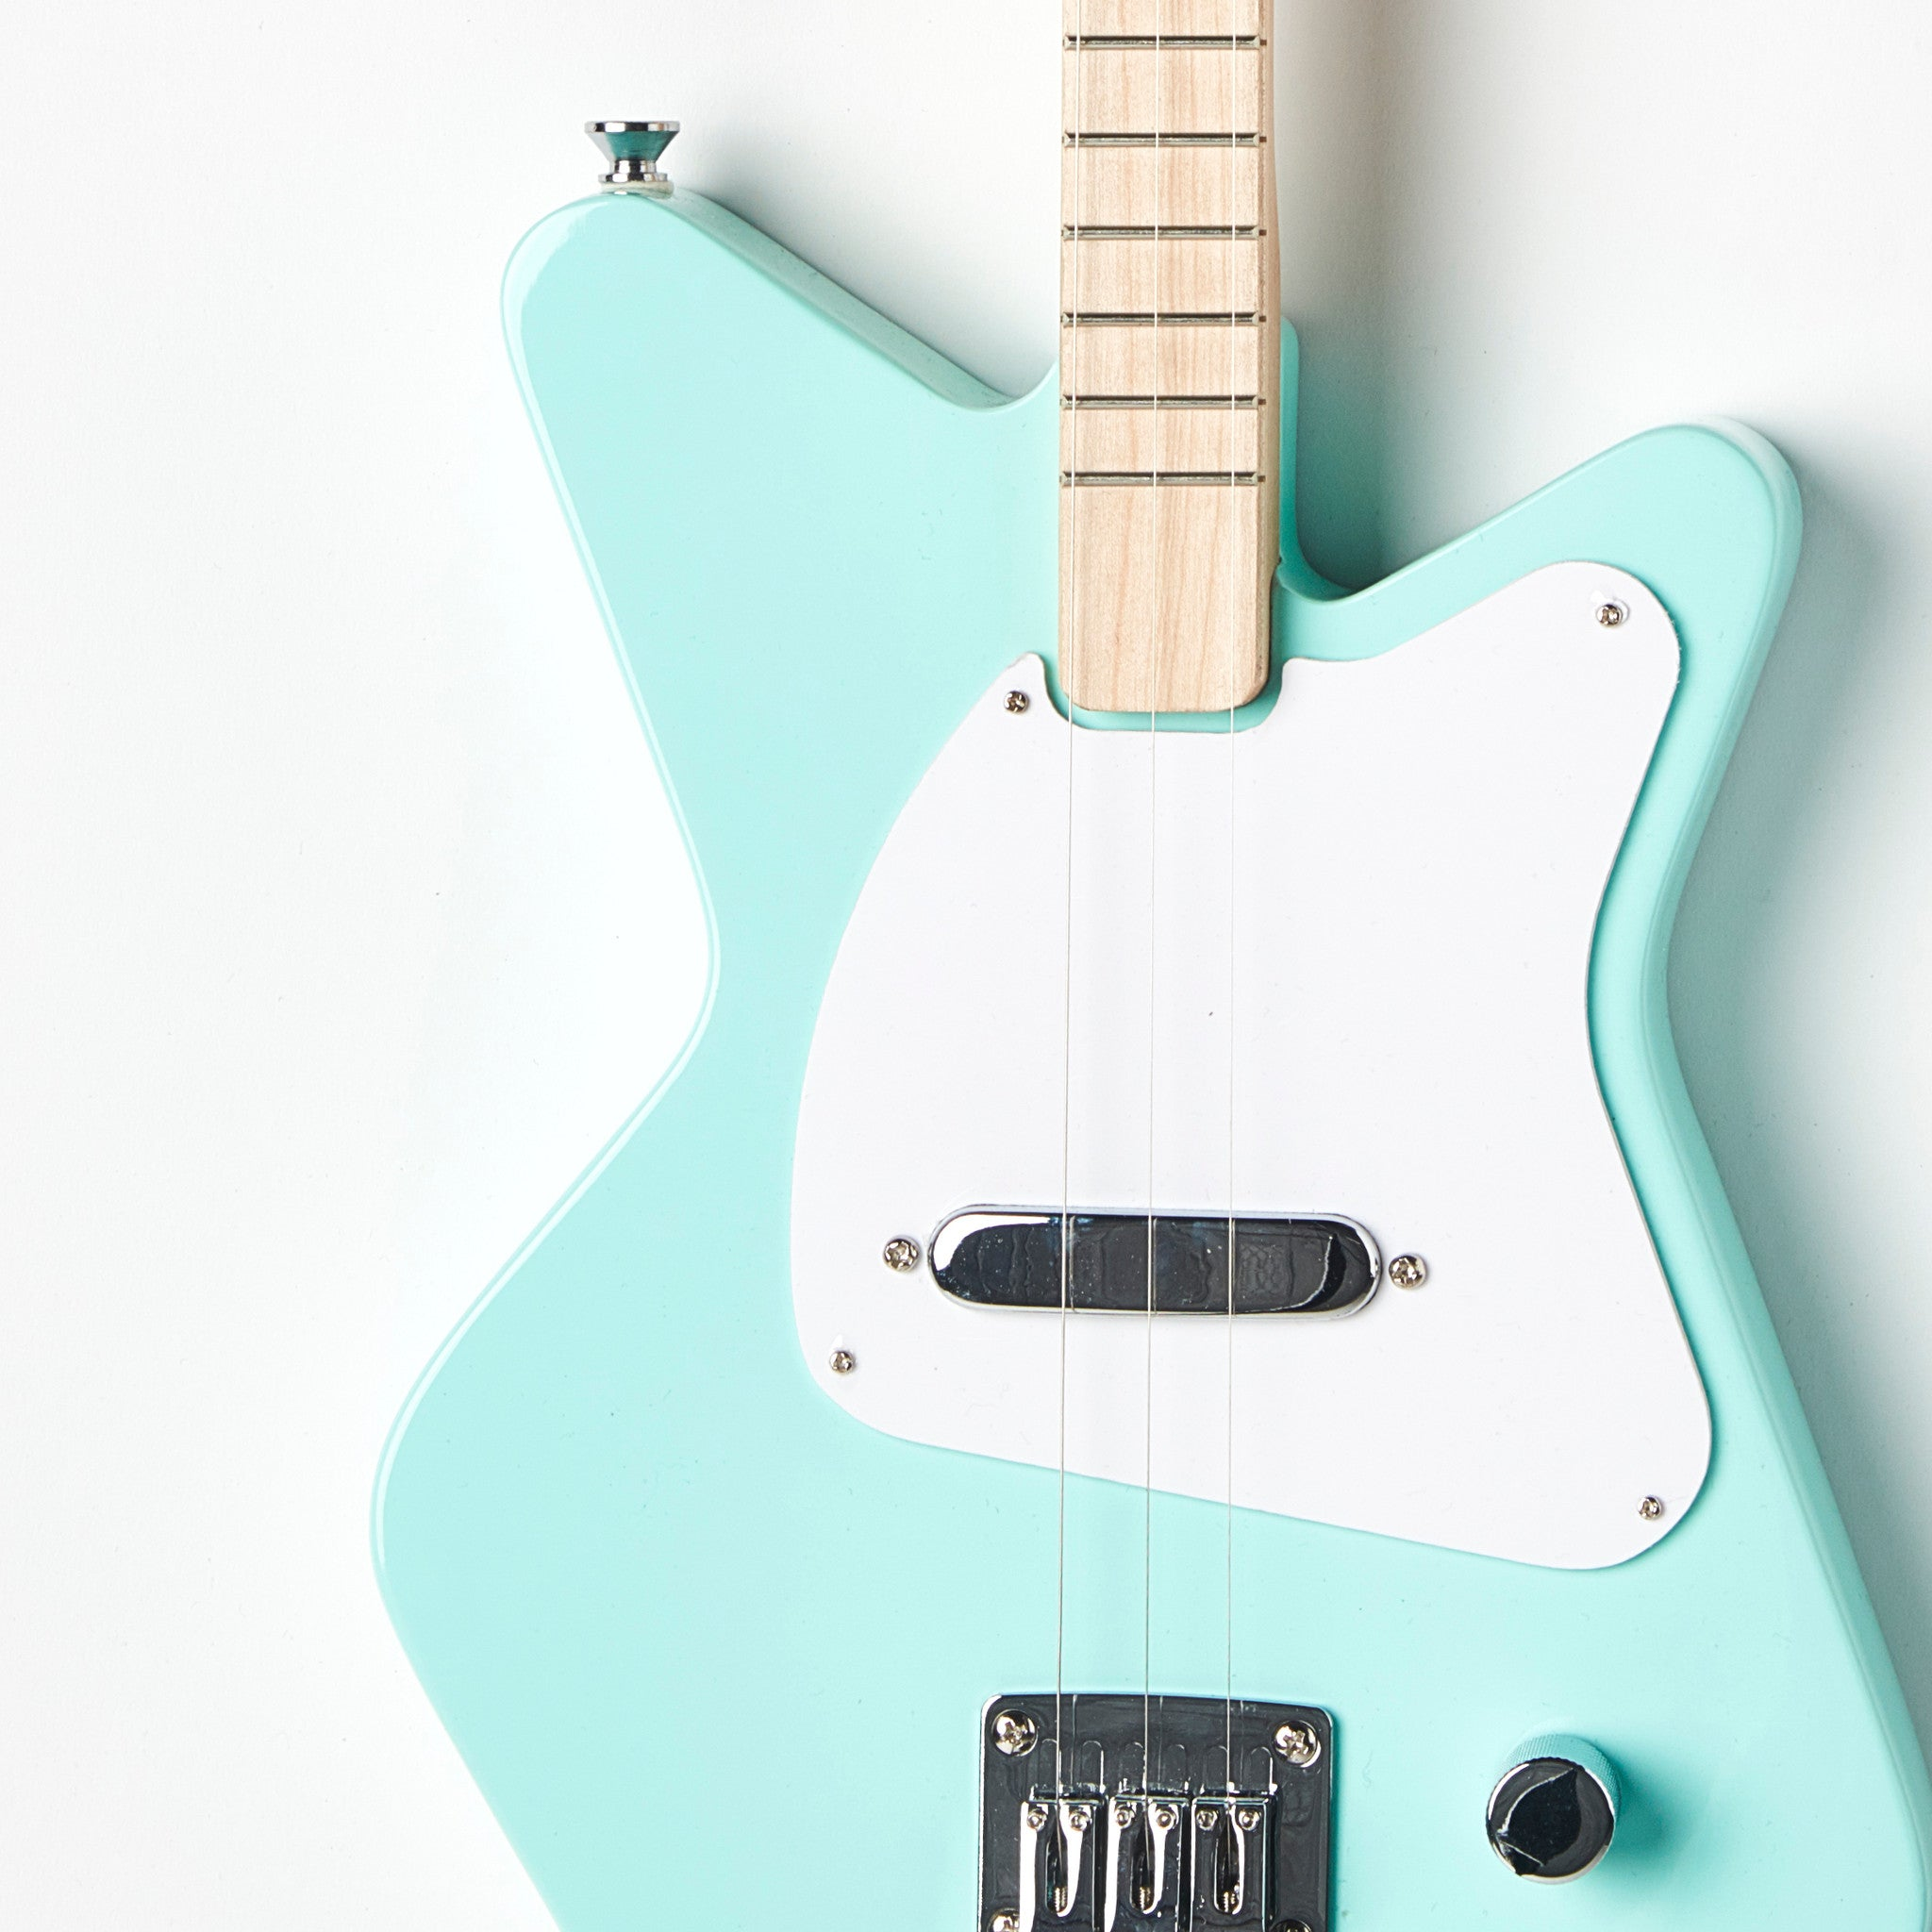 Loog Pro Electric guitar for kids - Green - Body Closeup